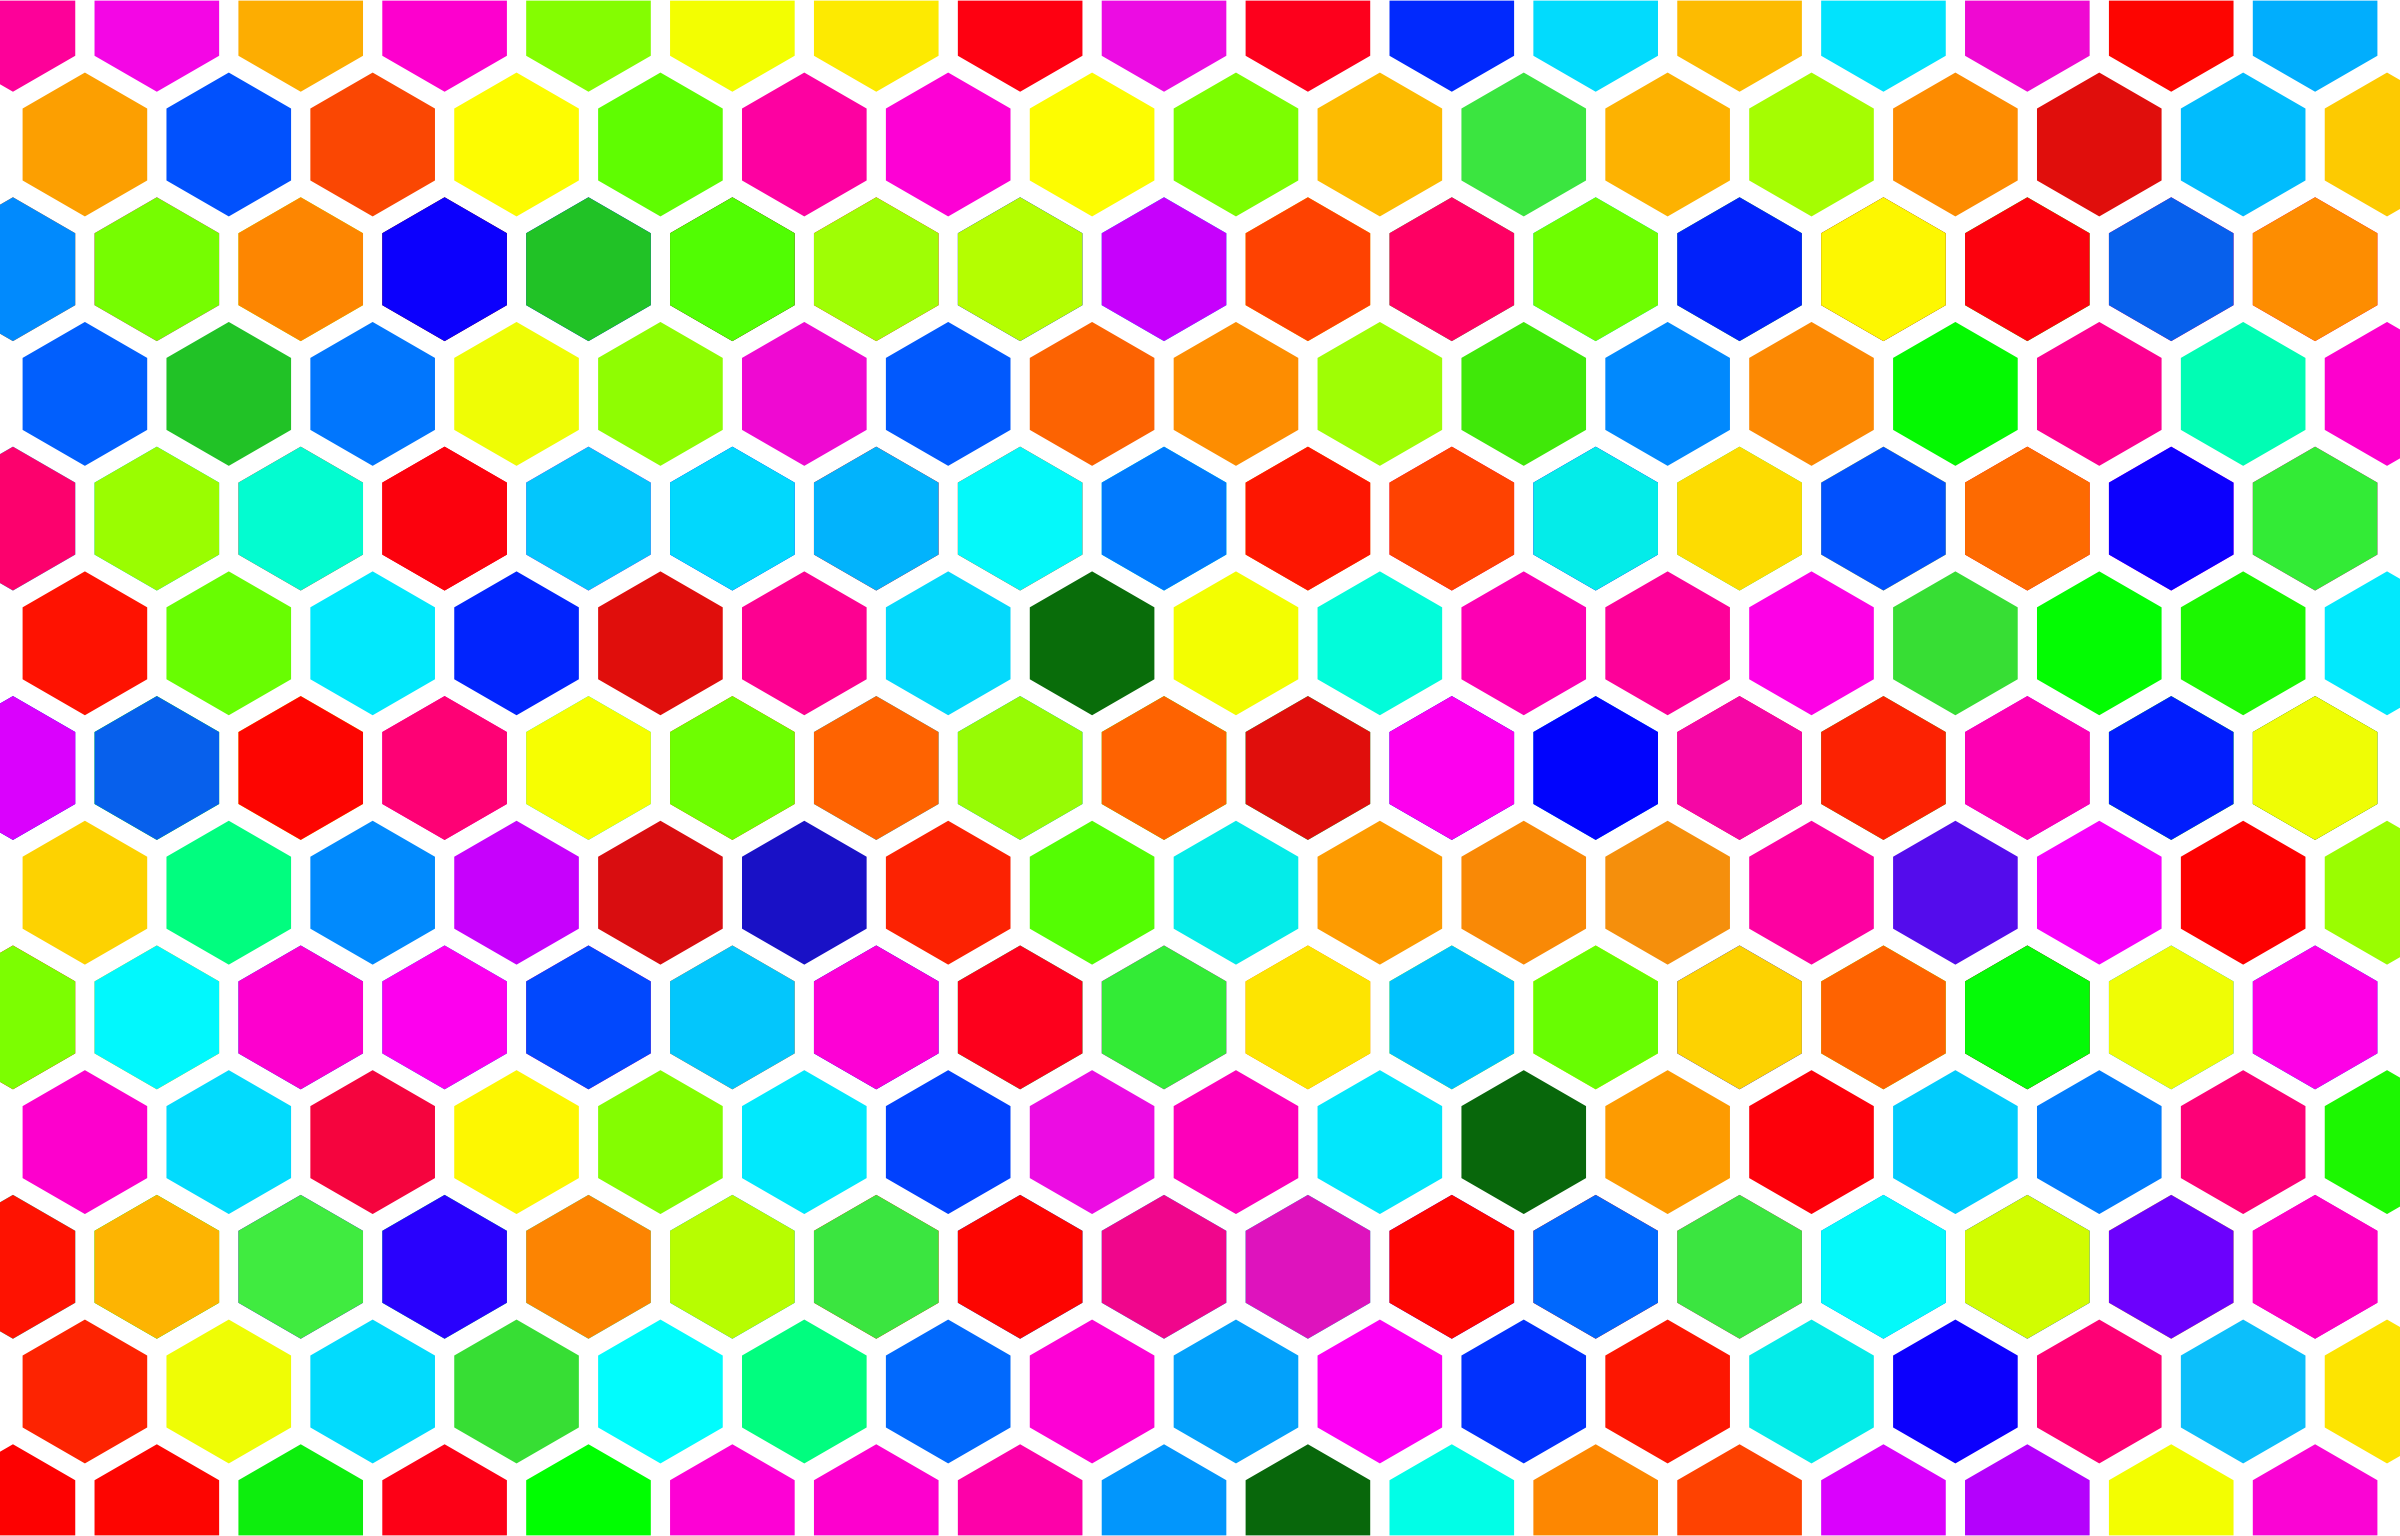 Colorful Hex Grid Pattern 4 by GDJ